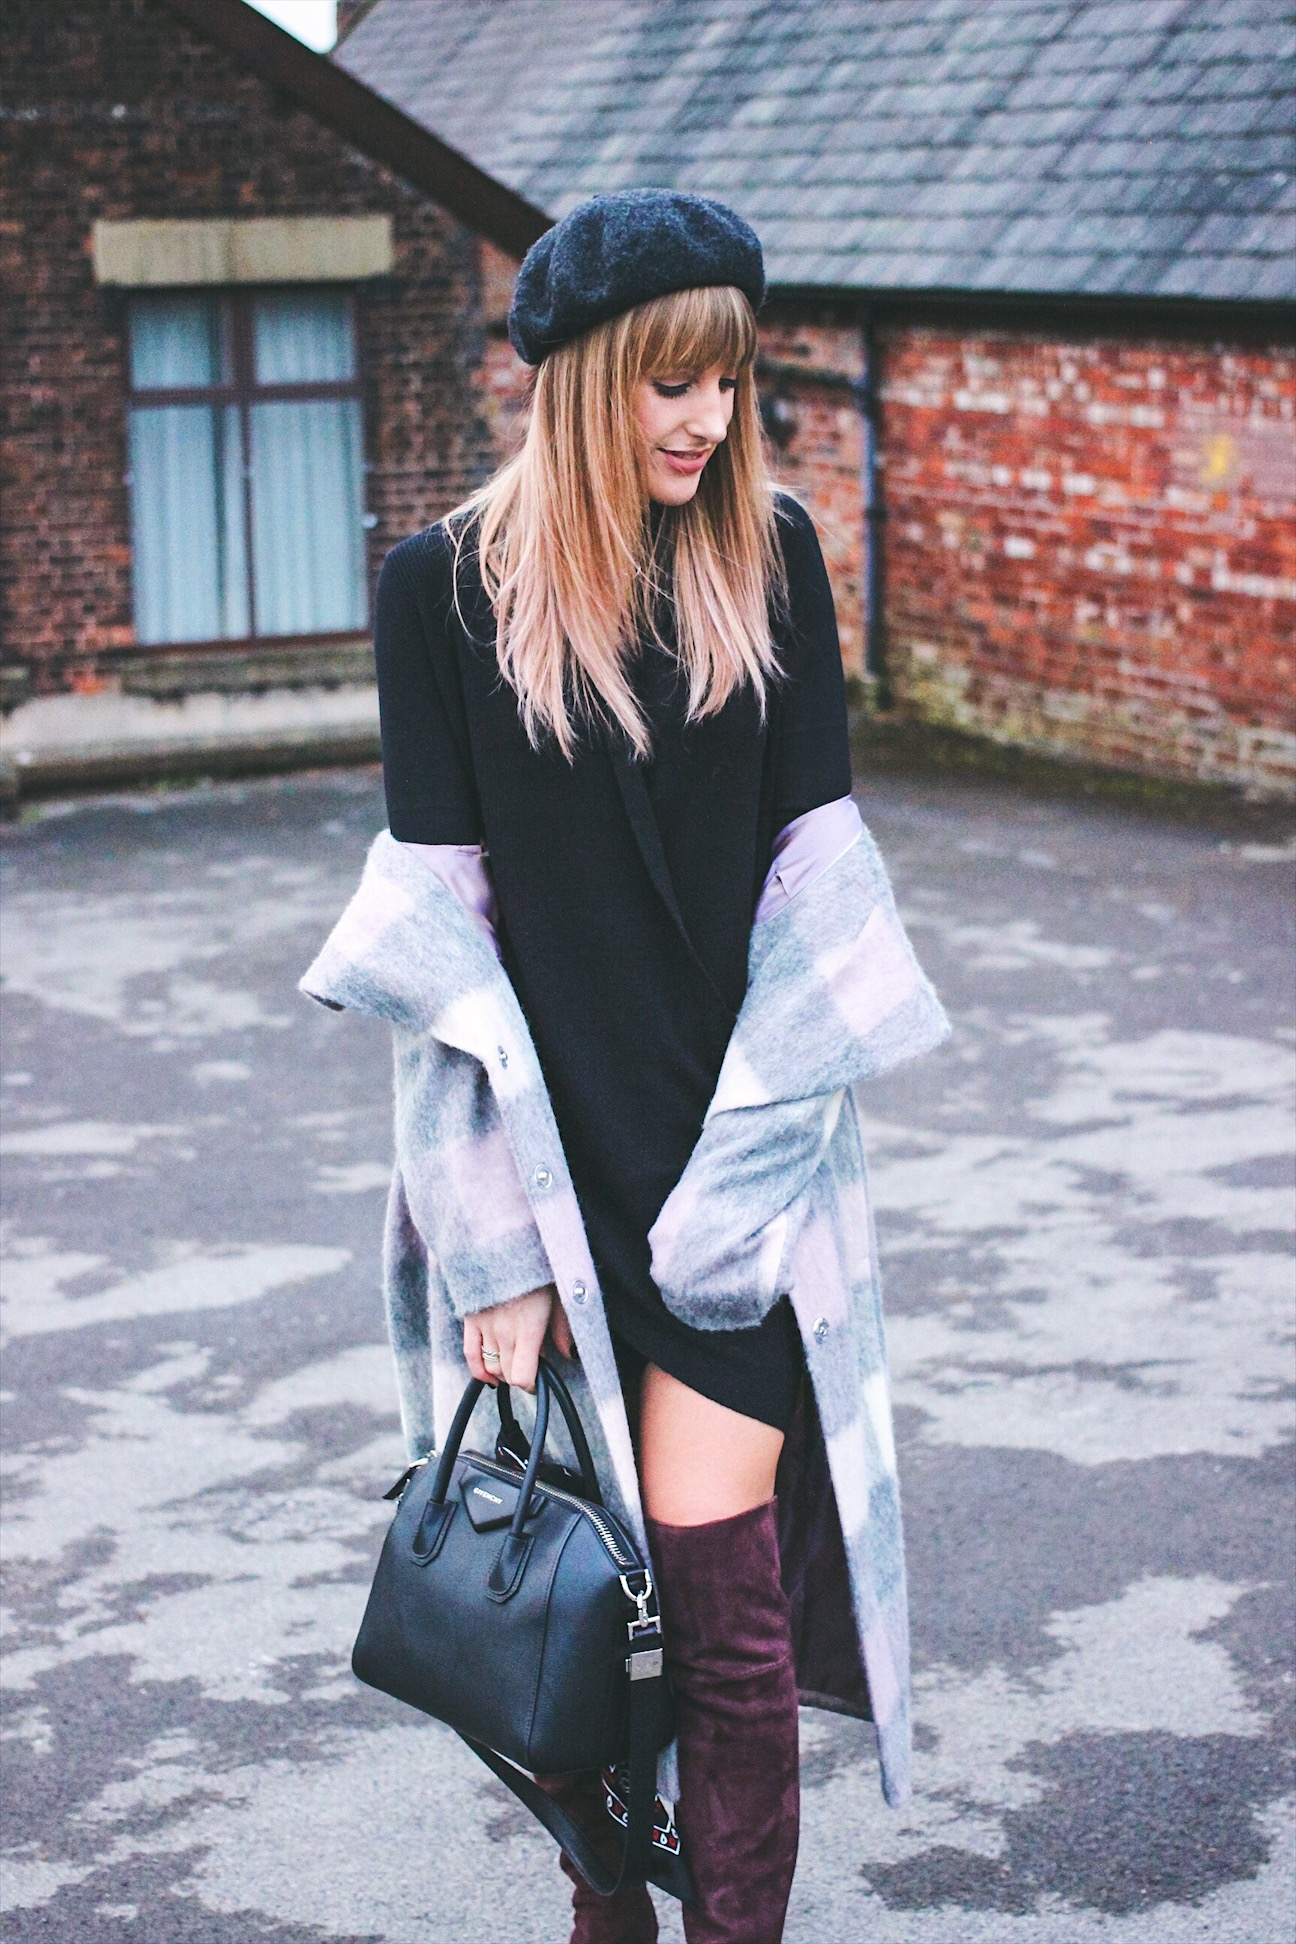 high street style blog lurchhoundloves by Charlotte Buttrick